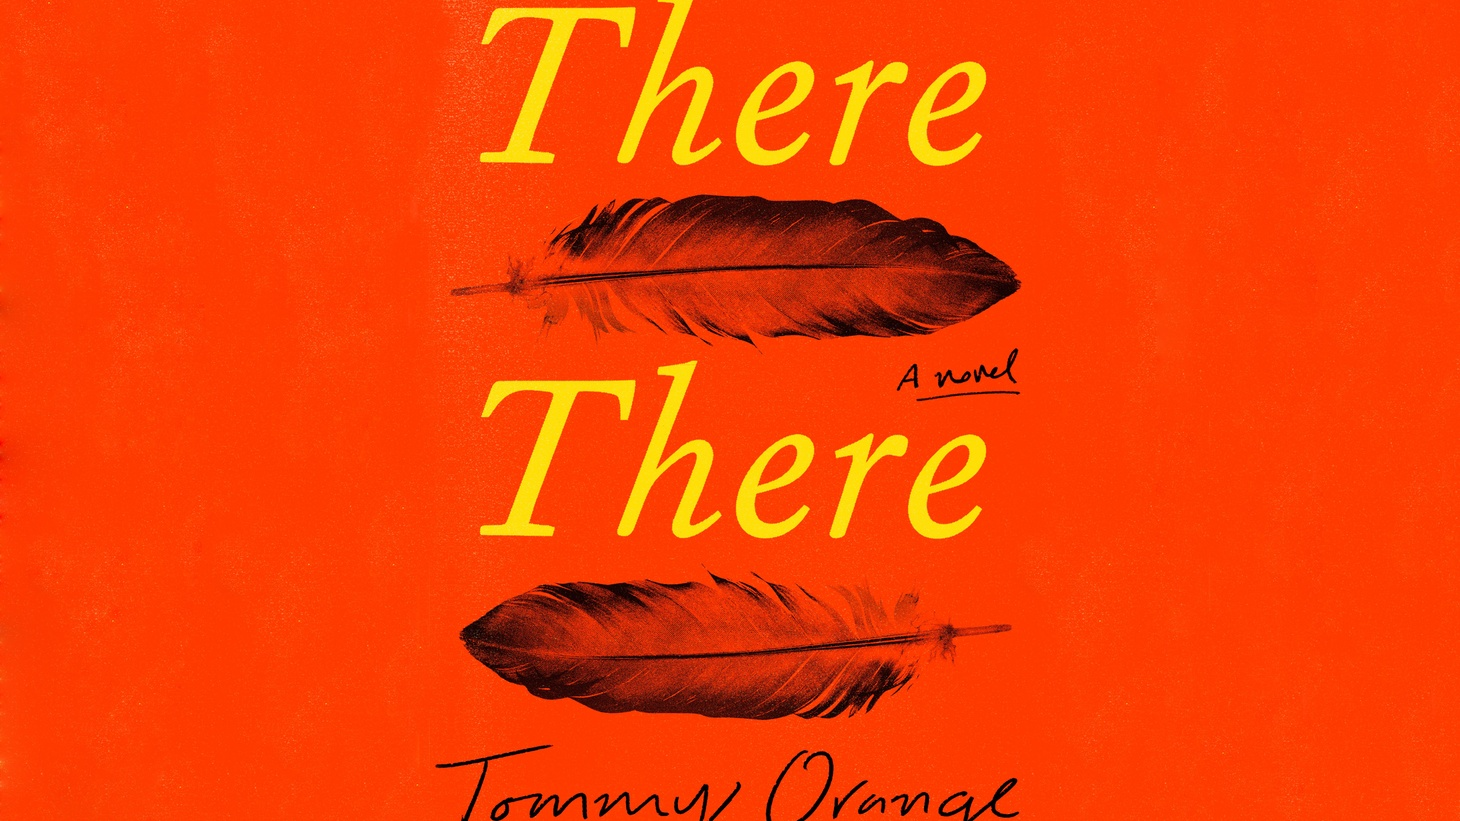 """Tommy Orange is a member of the Cheyenne and Arapaho tribes of Oklahoma, but he grew up in Oakland. His new novel, """"There There,"""" is set in Oakland."""